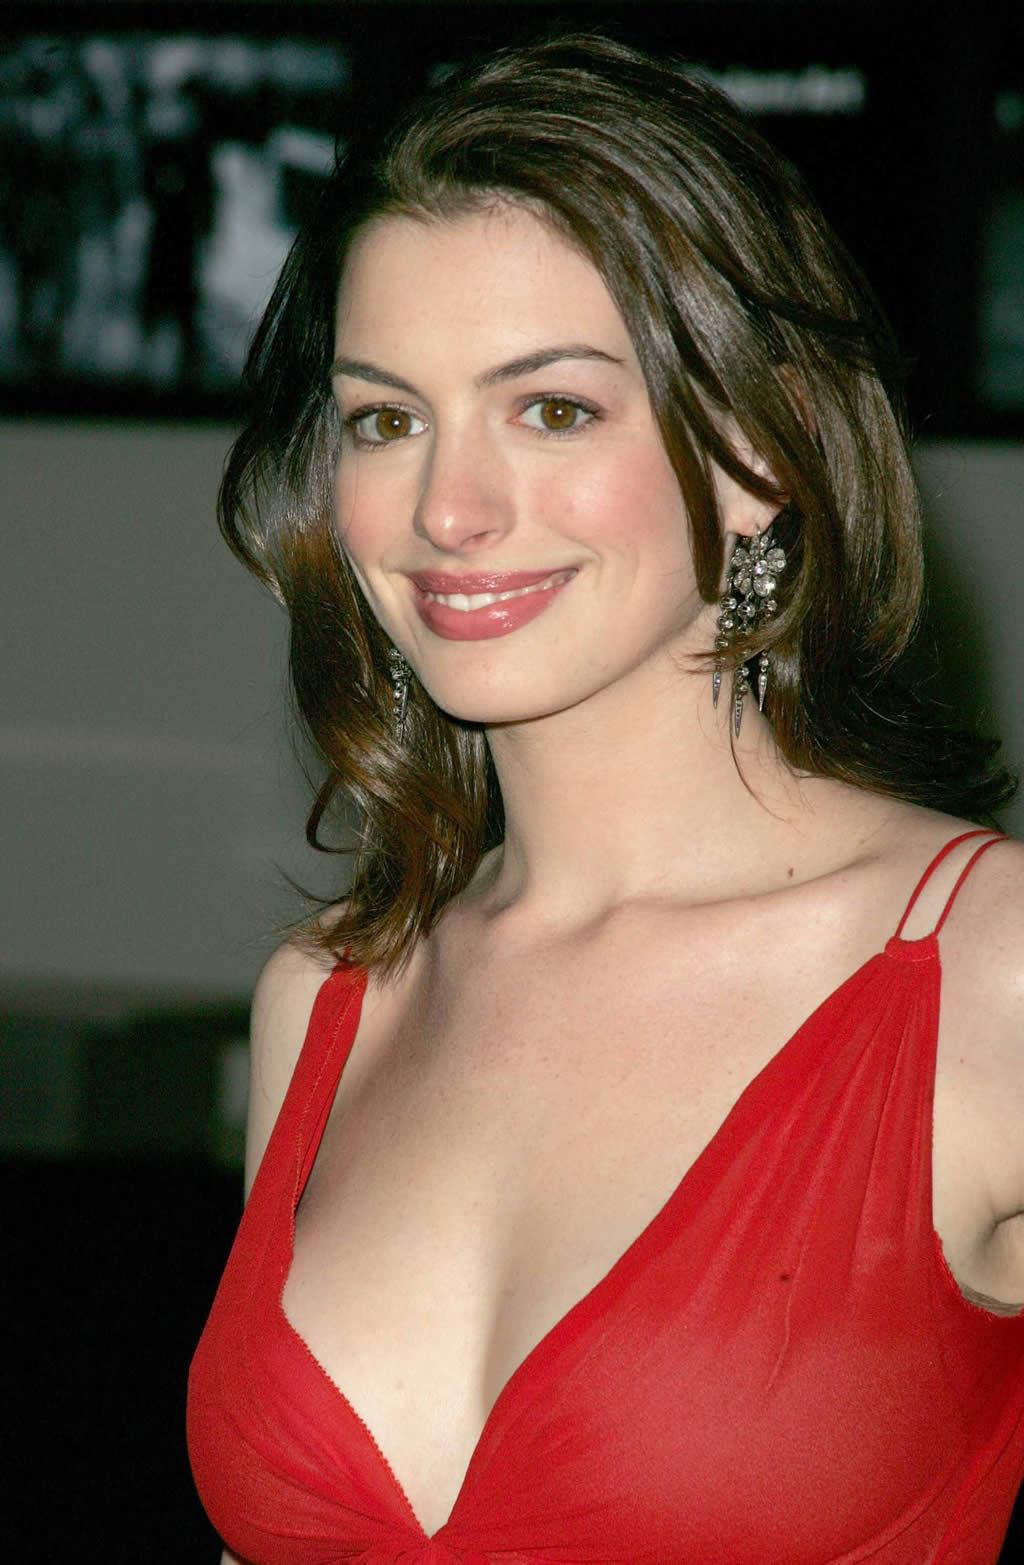 anne-hathaway-wallpaper-wp5602956